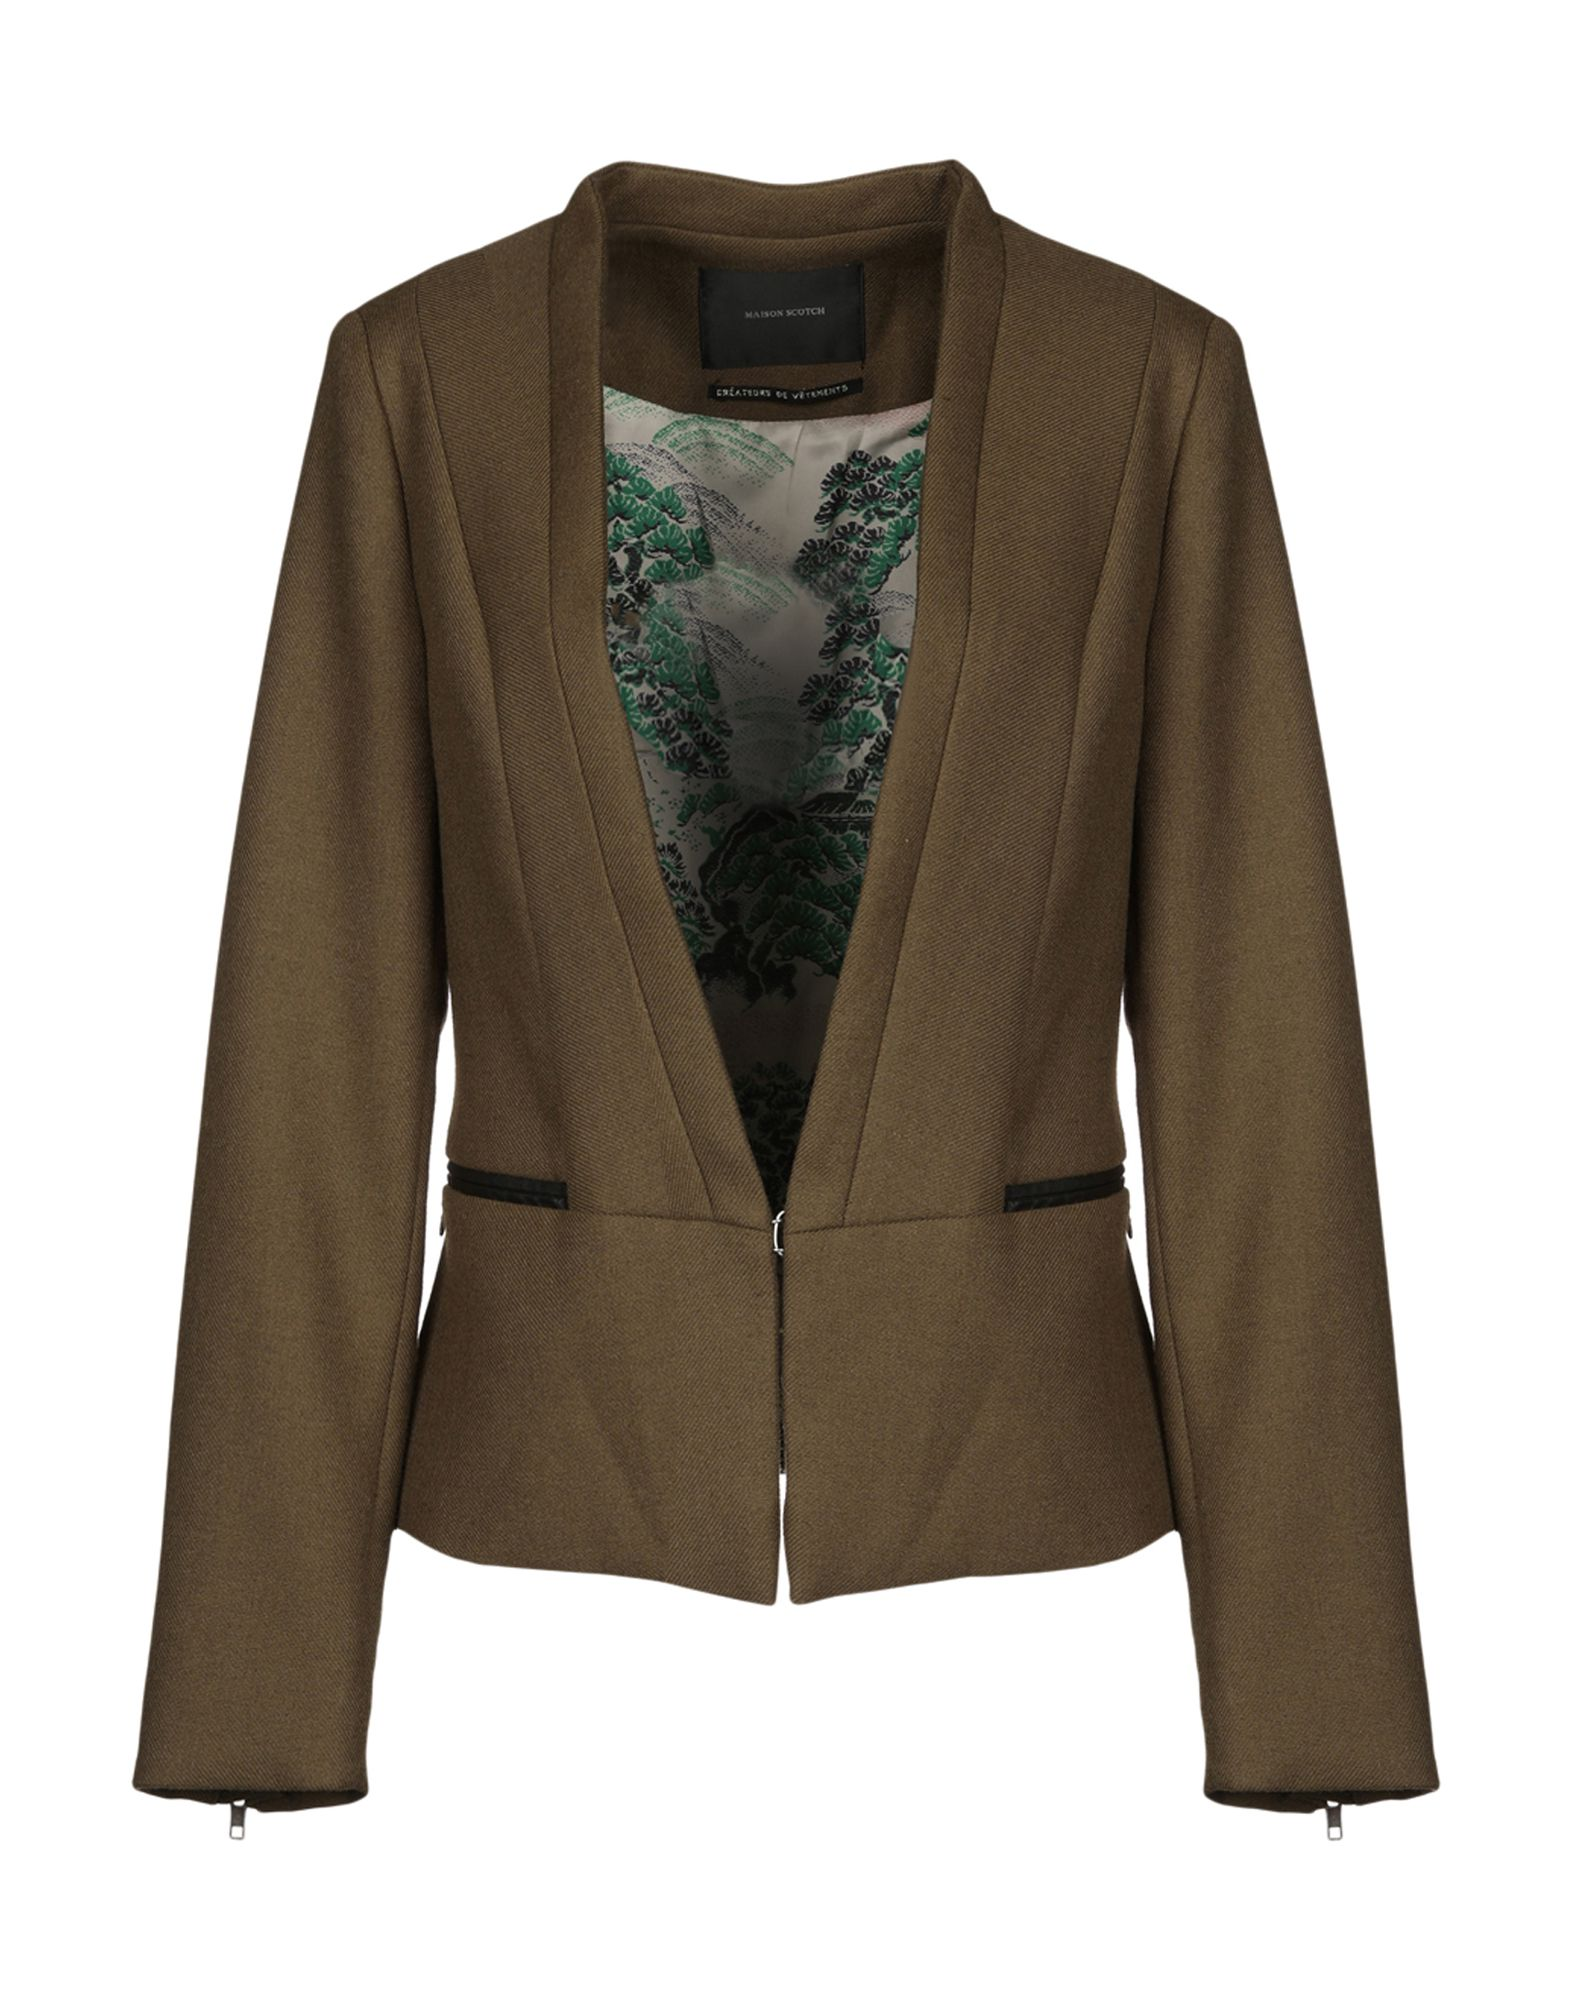 MAISON SCOTCH Blazer in Military Green